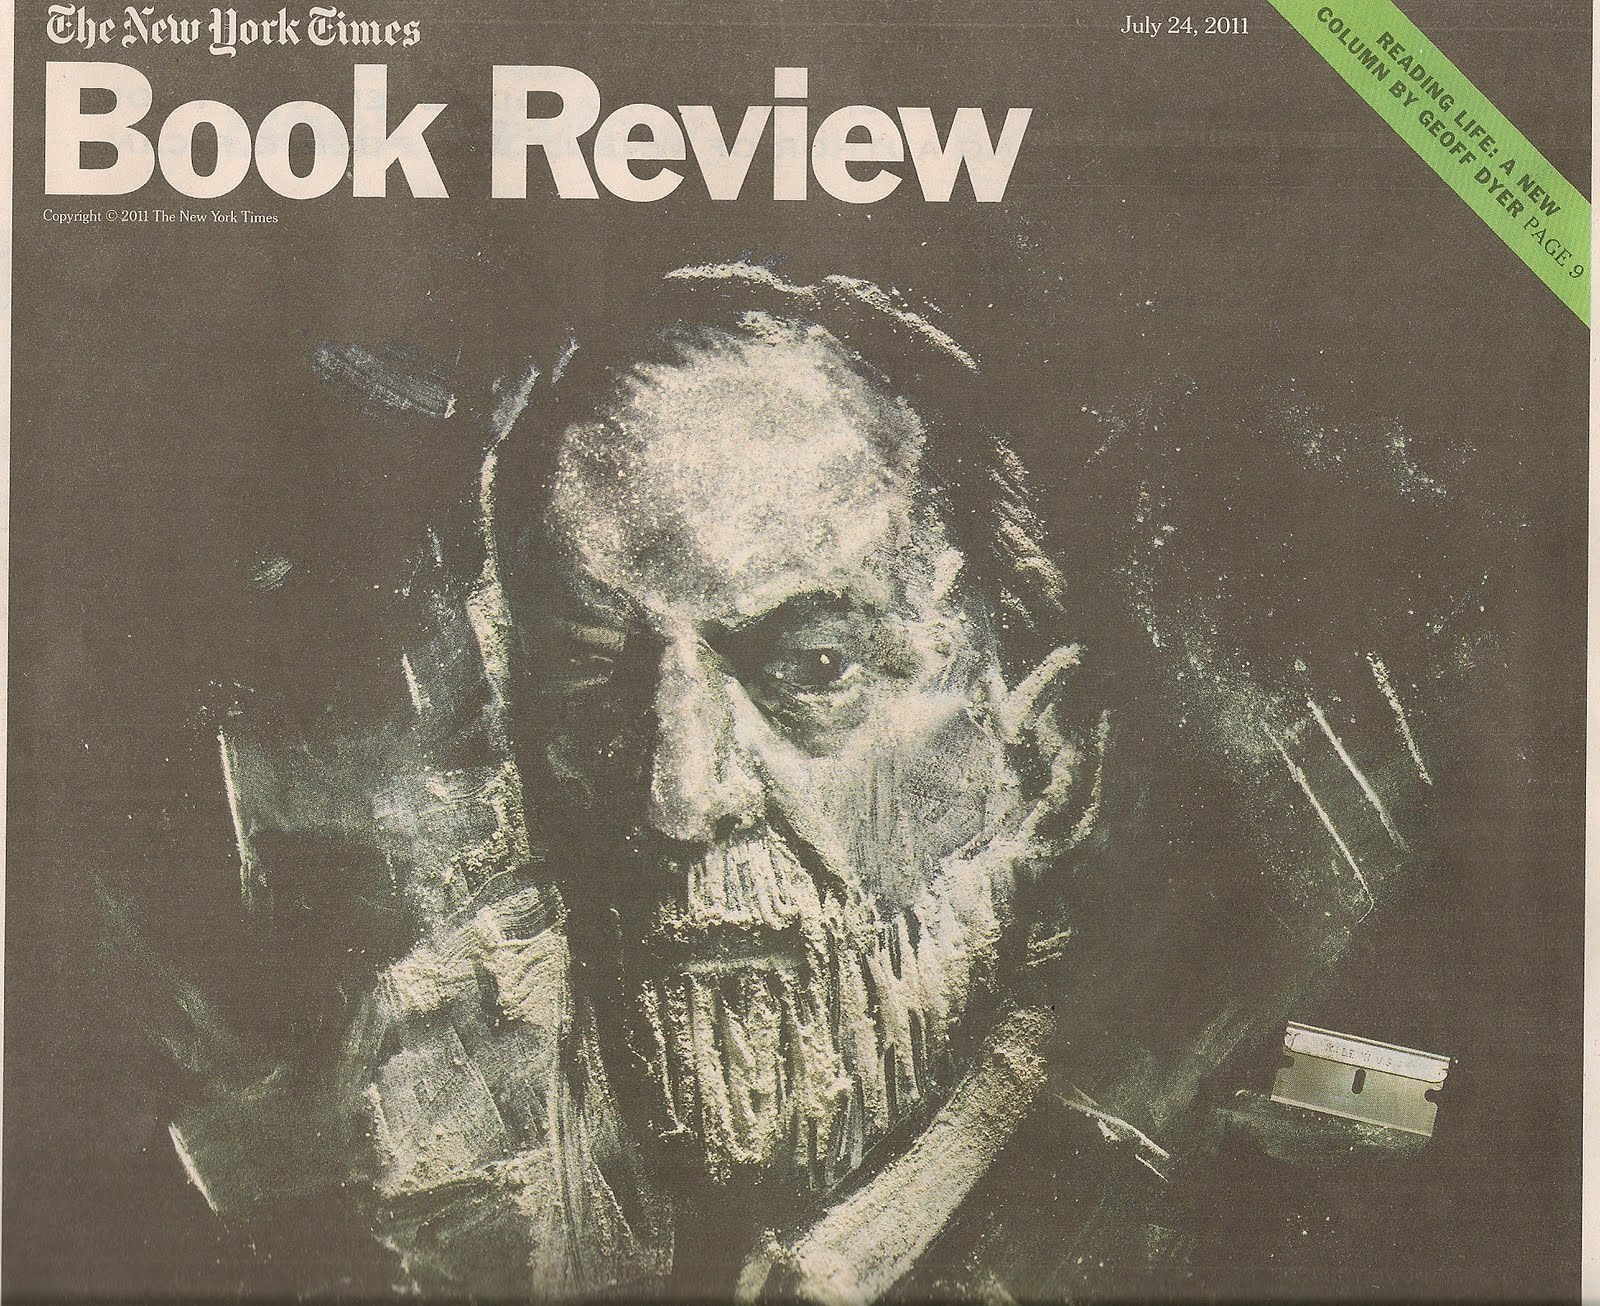 Attwood Collected Works: Cover of NYT Book Review today drew my ...